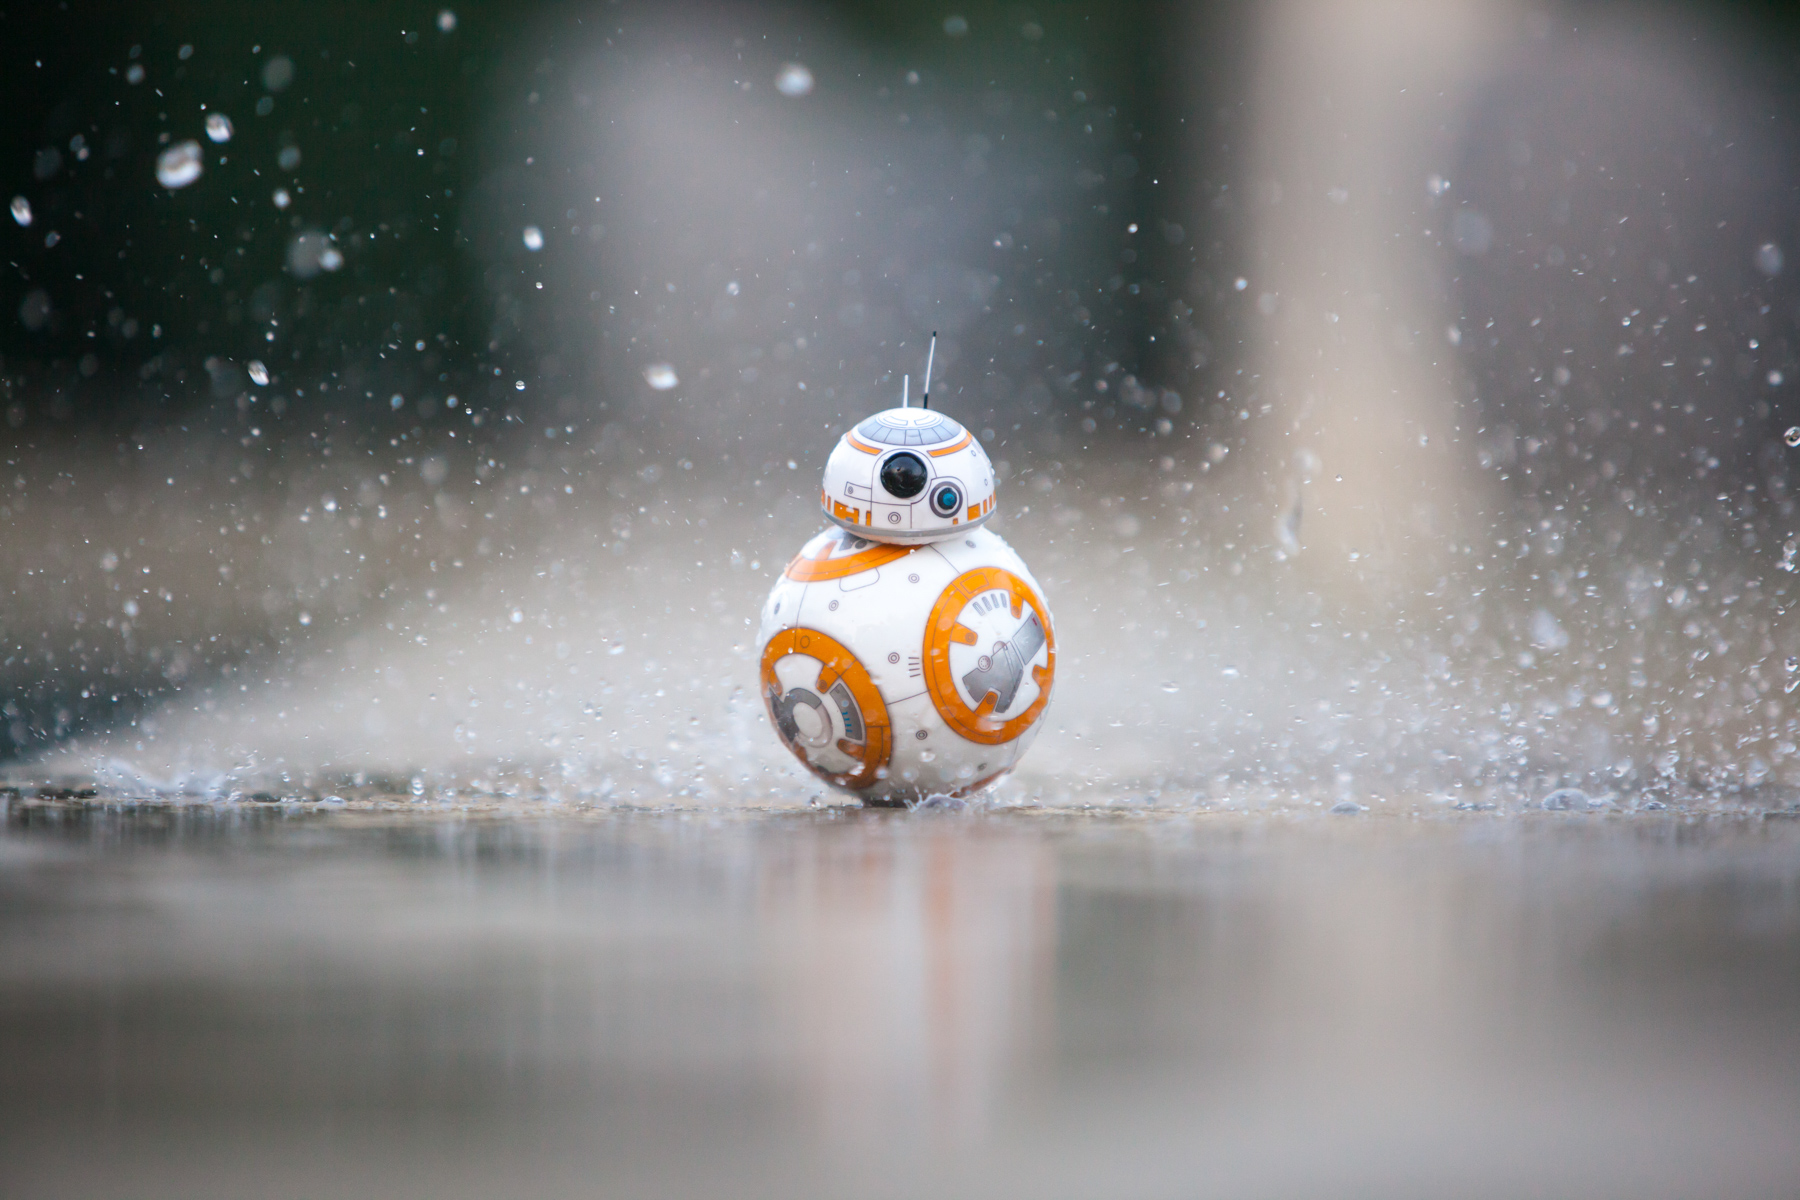 Sphero BB-8 robot by Star Wars rolling towards the camera while getting splashed by water.